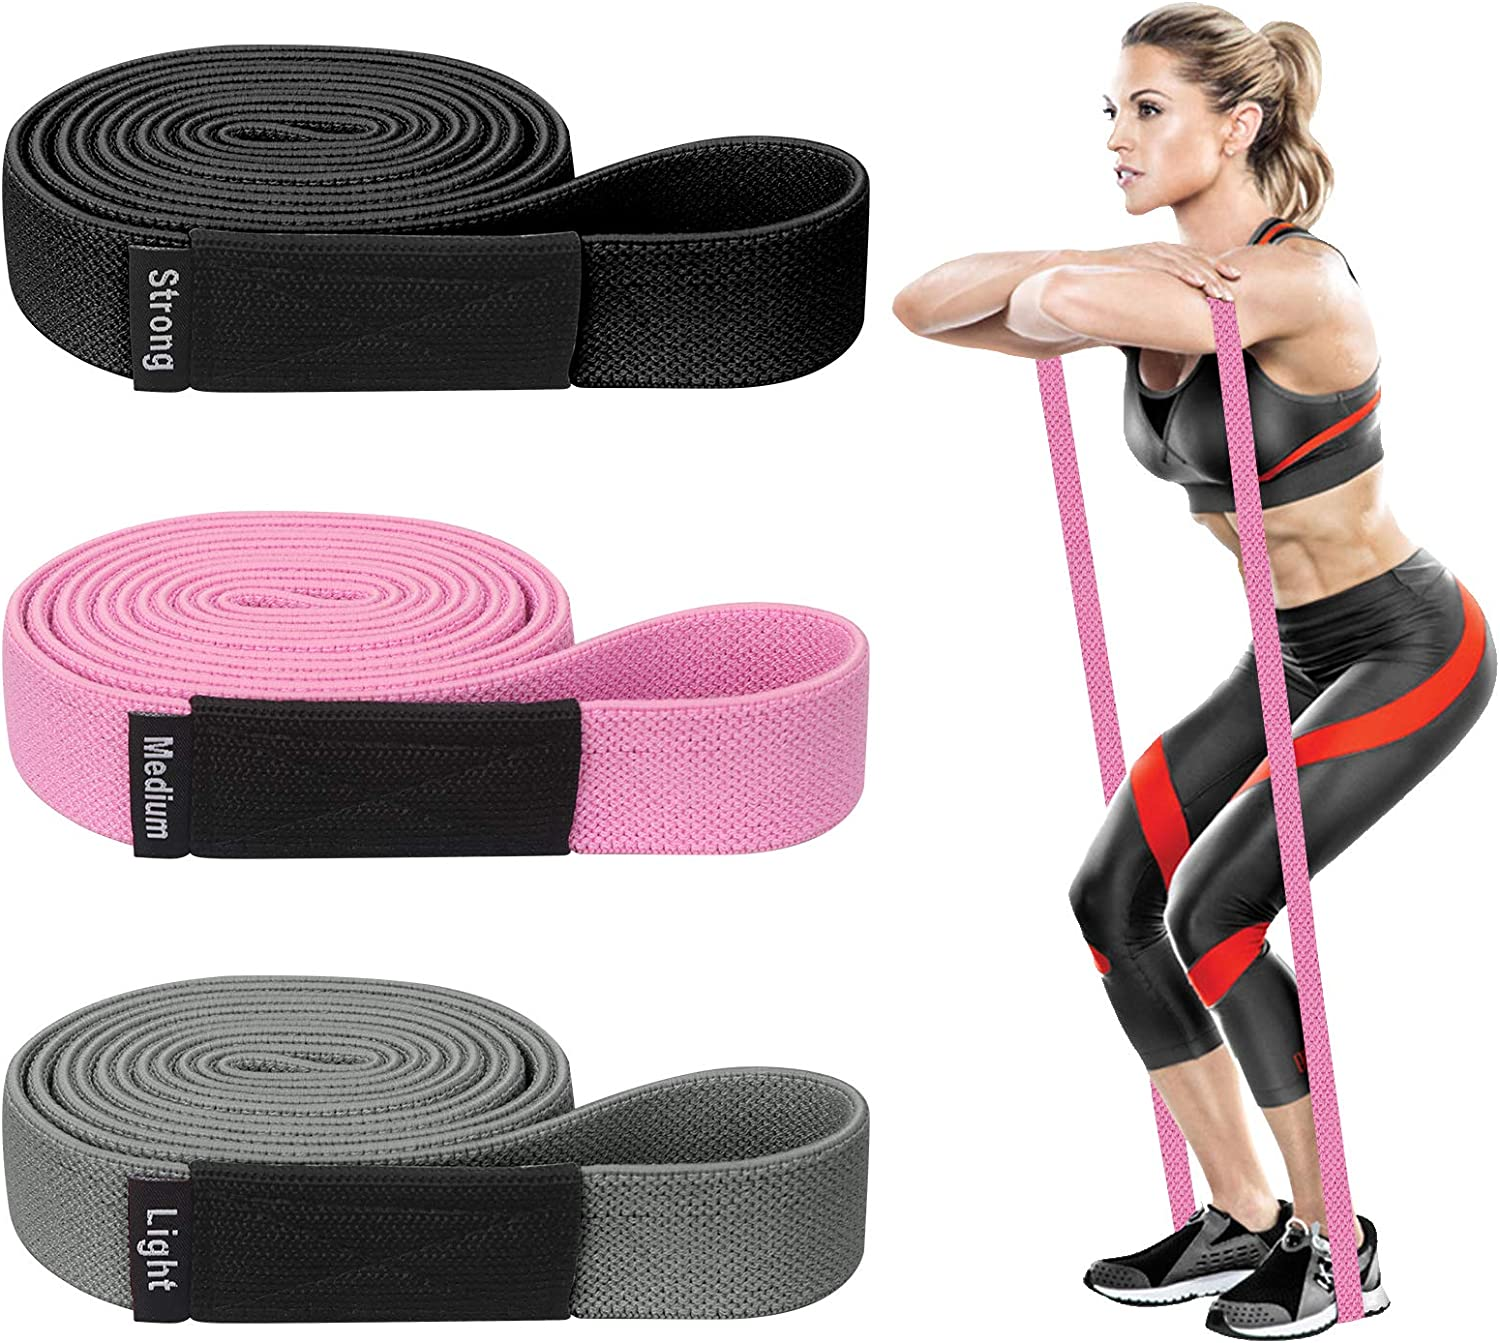 FYY Resistance Bands,Elastic Fabric Pull Up Assistance Bands for Women Men Fitness Body,Stretch Exercise Resistance Bands for Workout Body Powerlifting for Home Gym